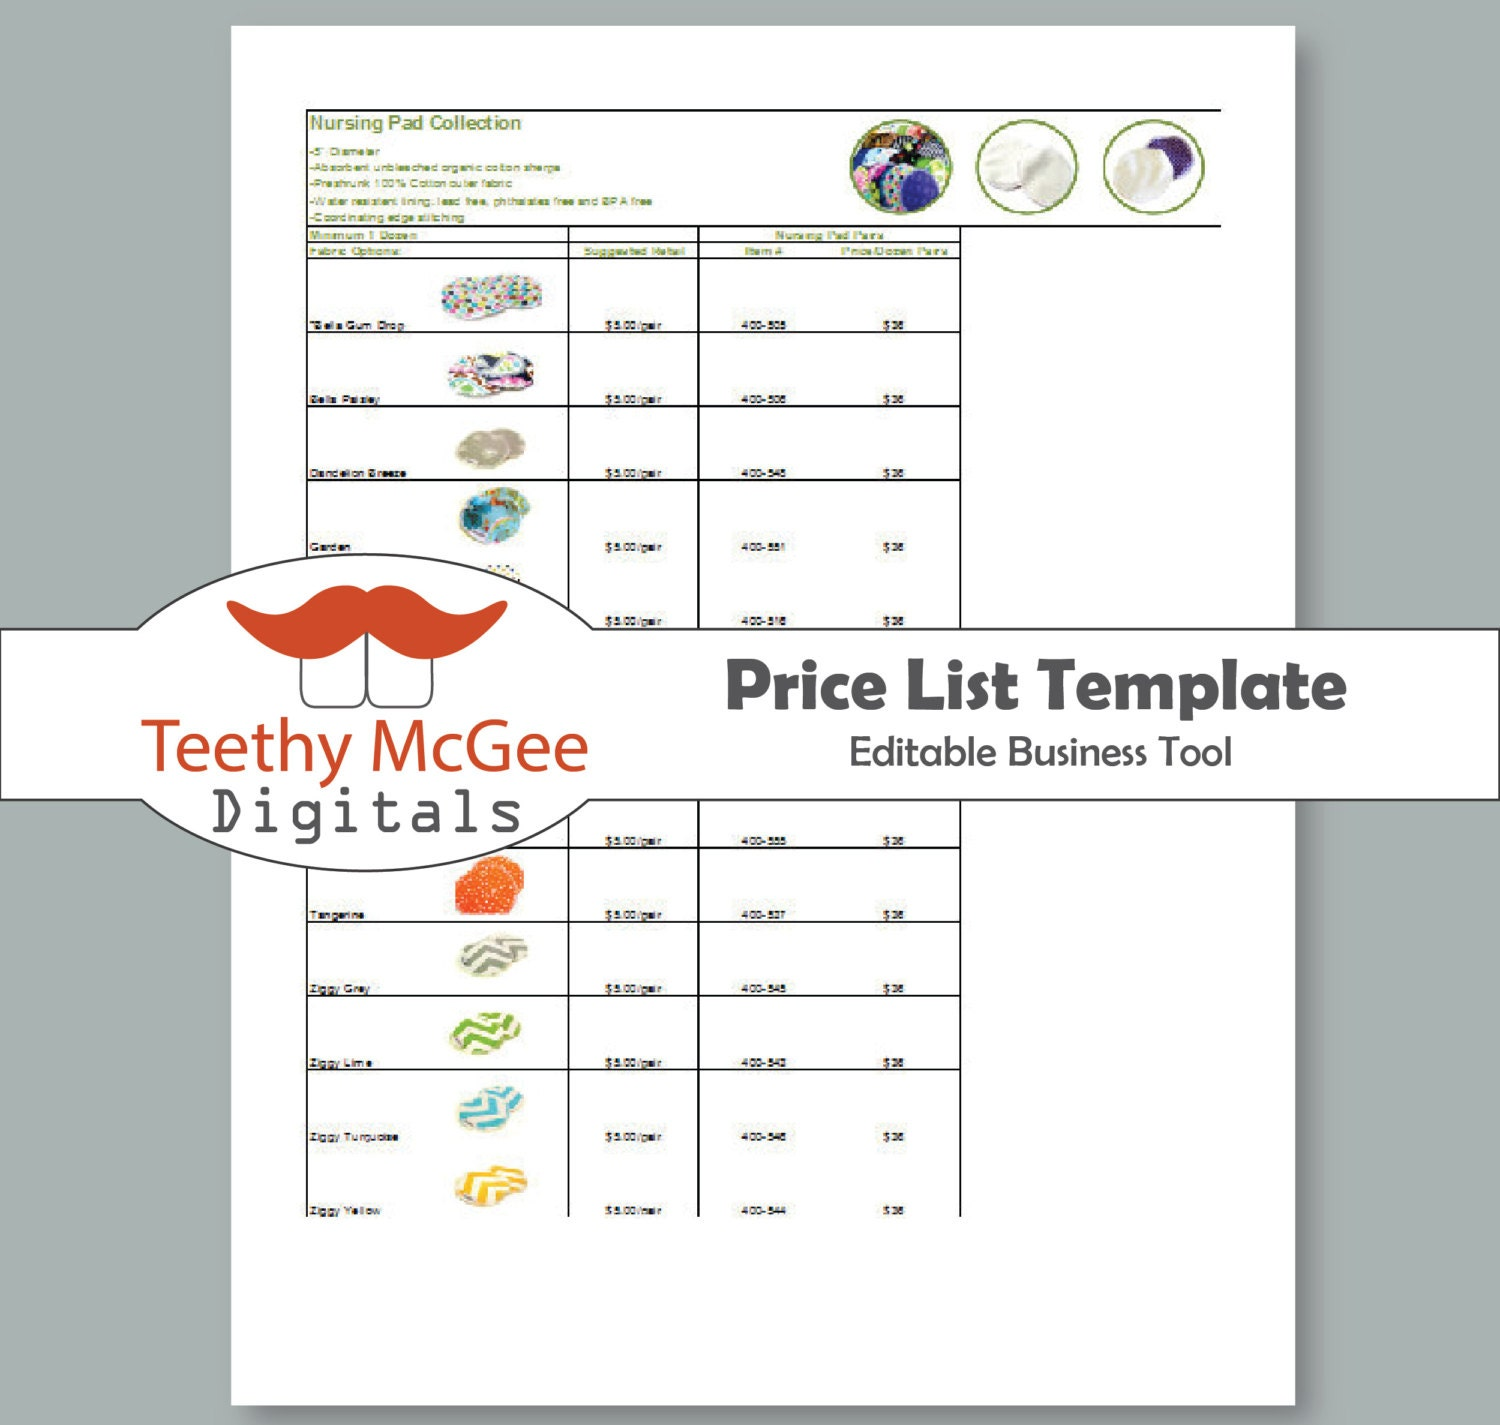 Price Sheet Template method statement template doc – Pricing Sheet Template